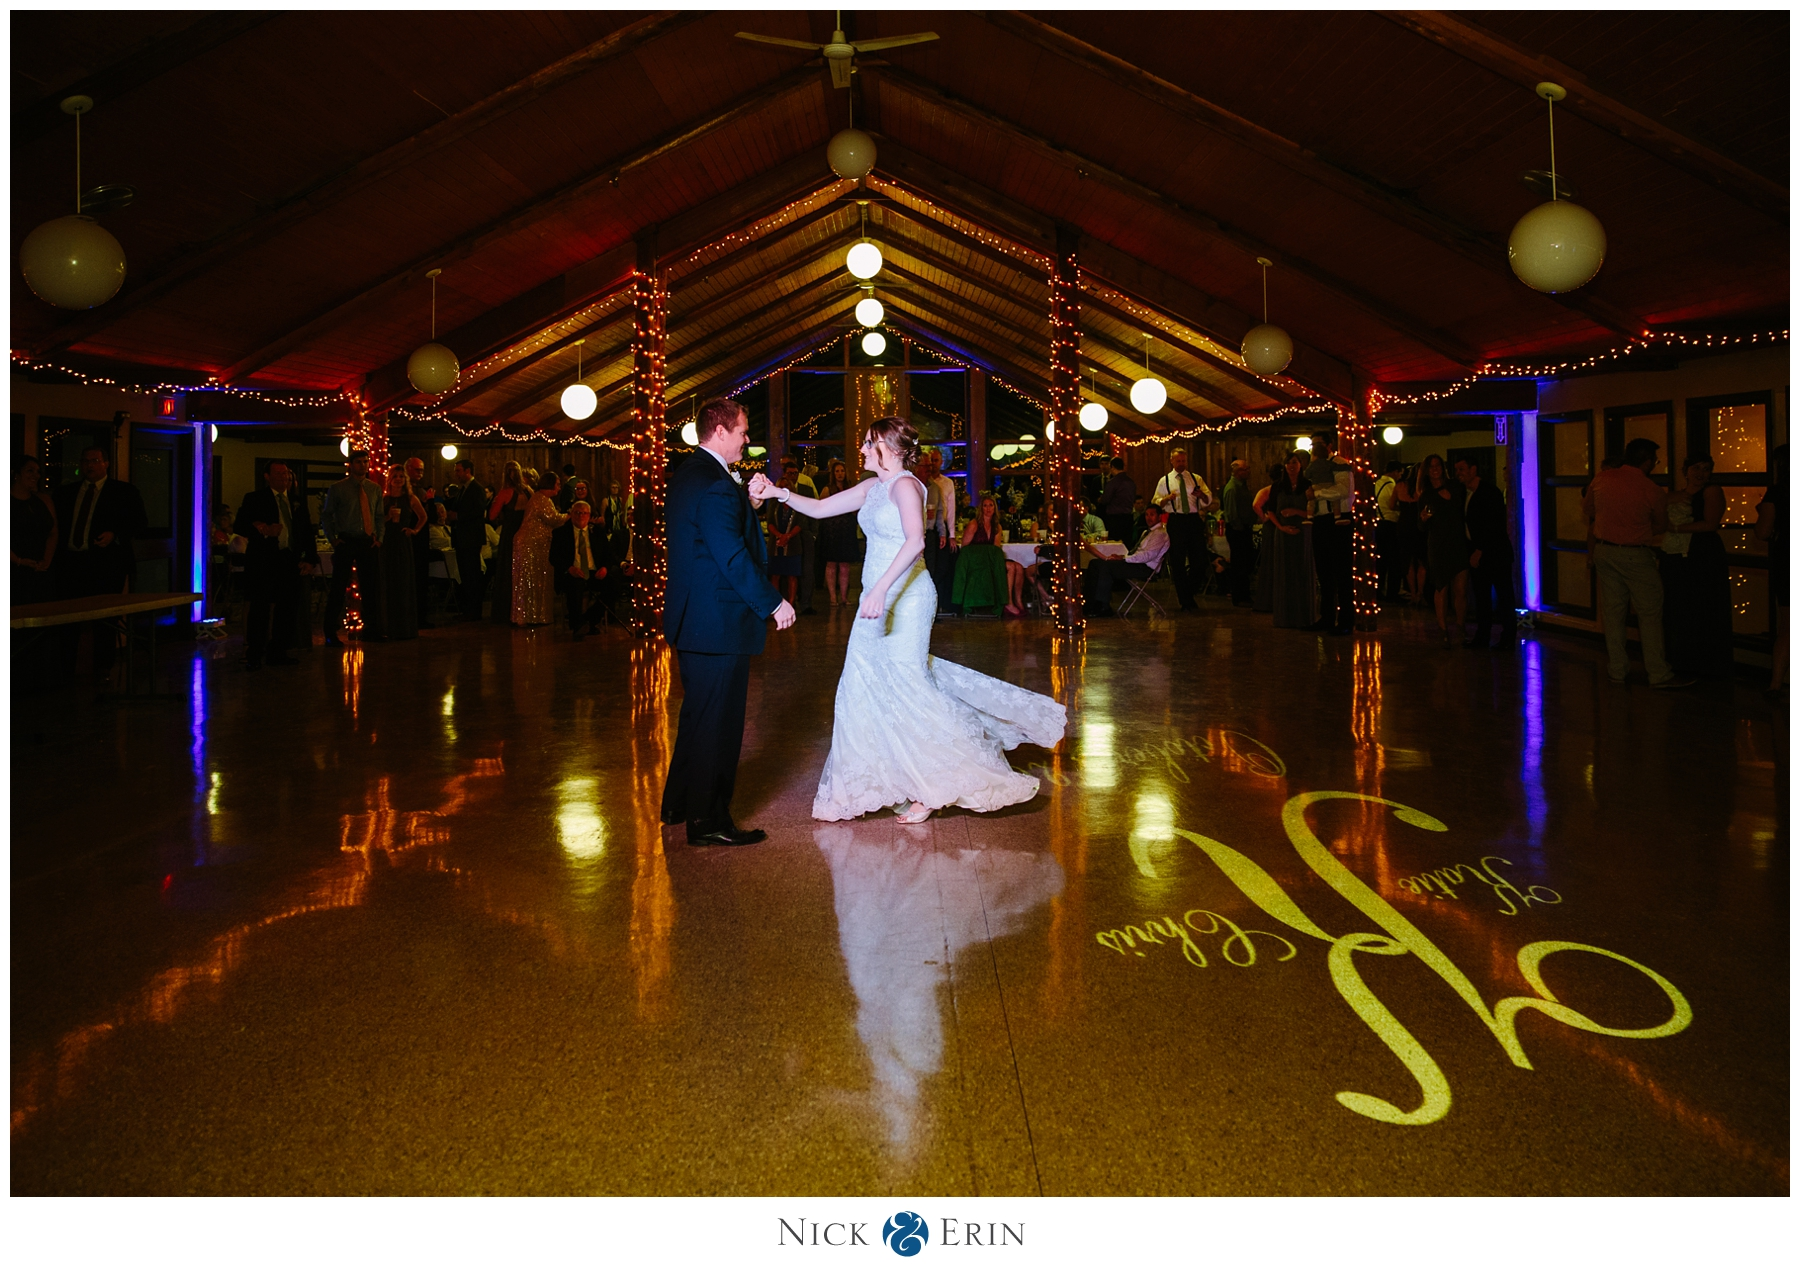 donner_photography_iowa-wedding_katie-chris_0050